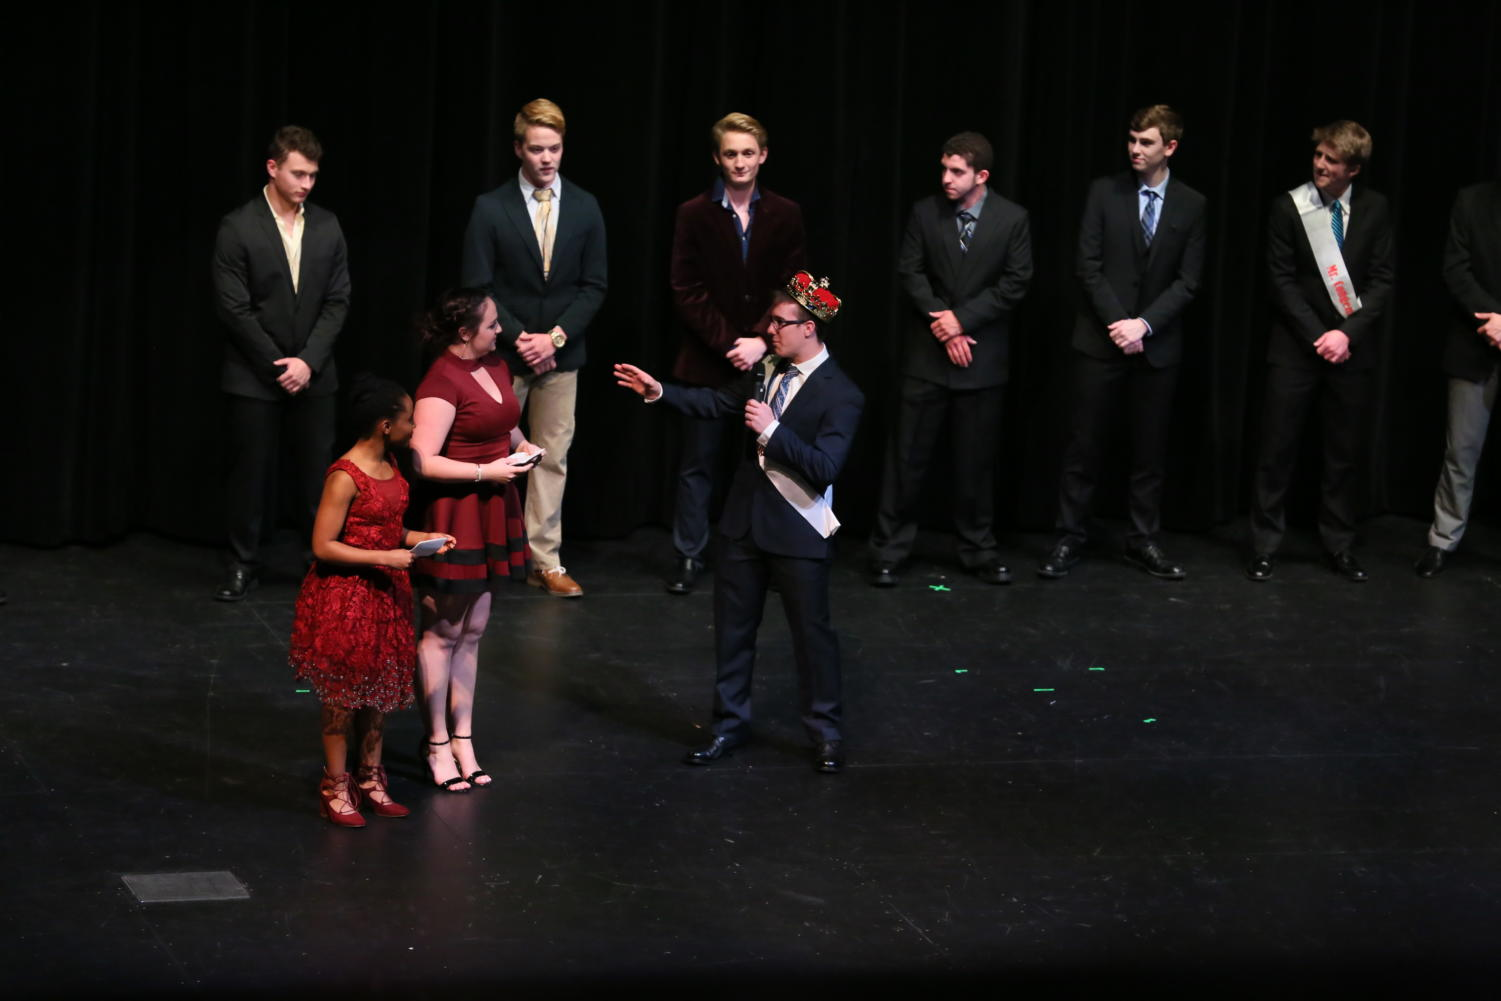 Last year's Mr. LHS was a big hit and the hope is to have the same turnout this year as well.